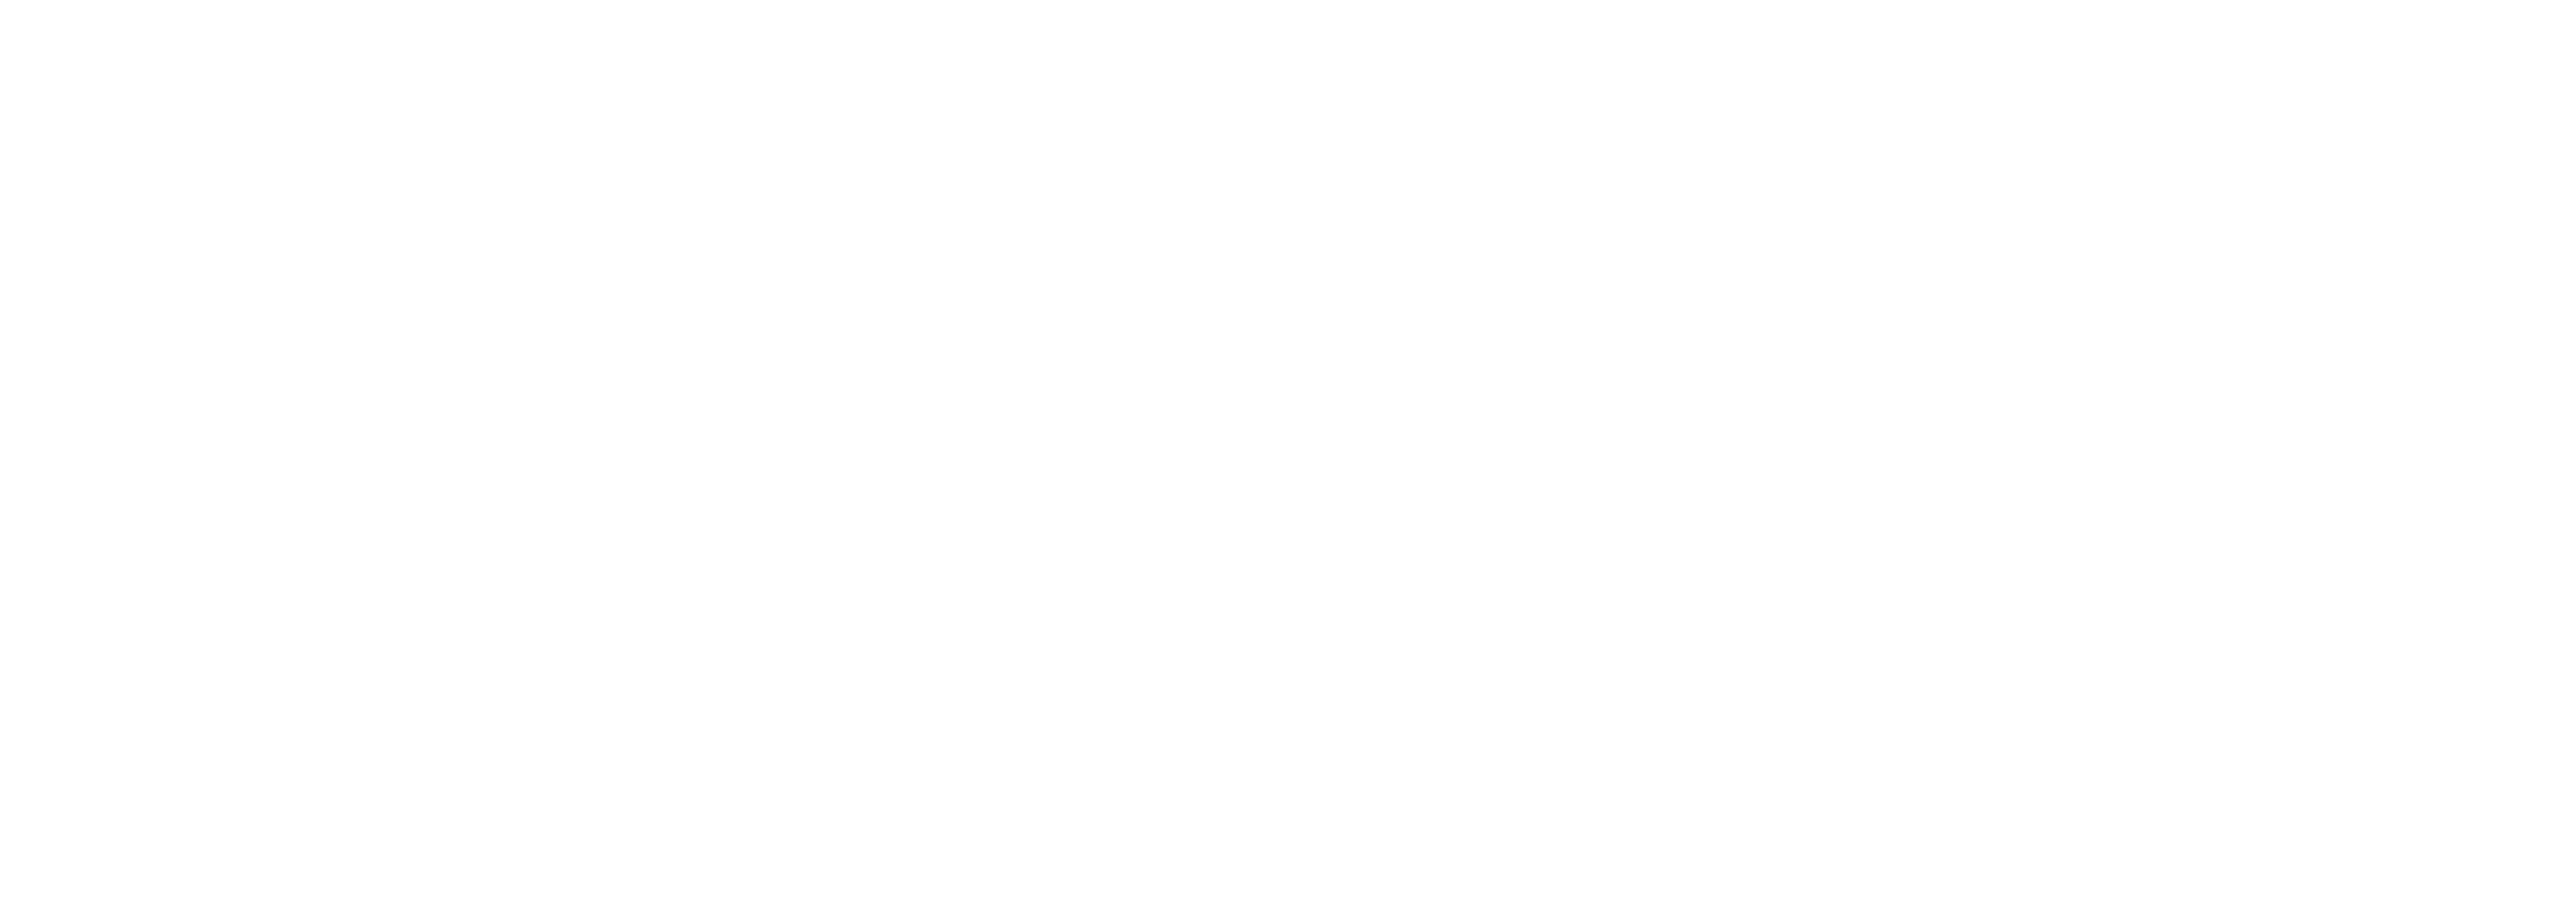 Bruce County Museum logo